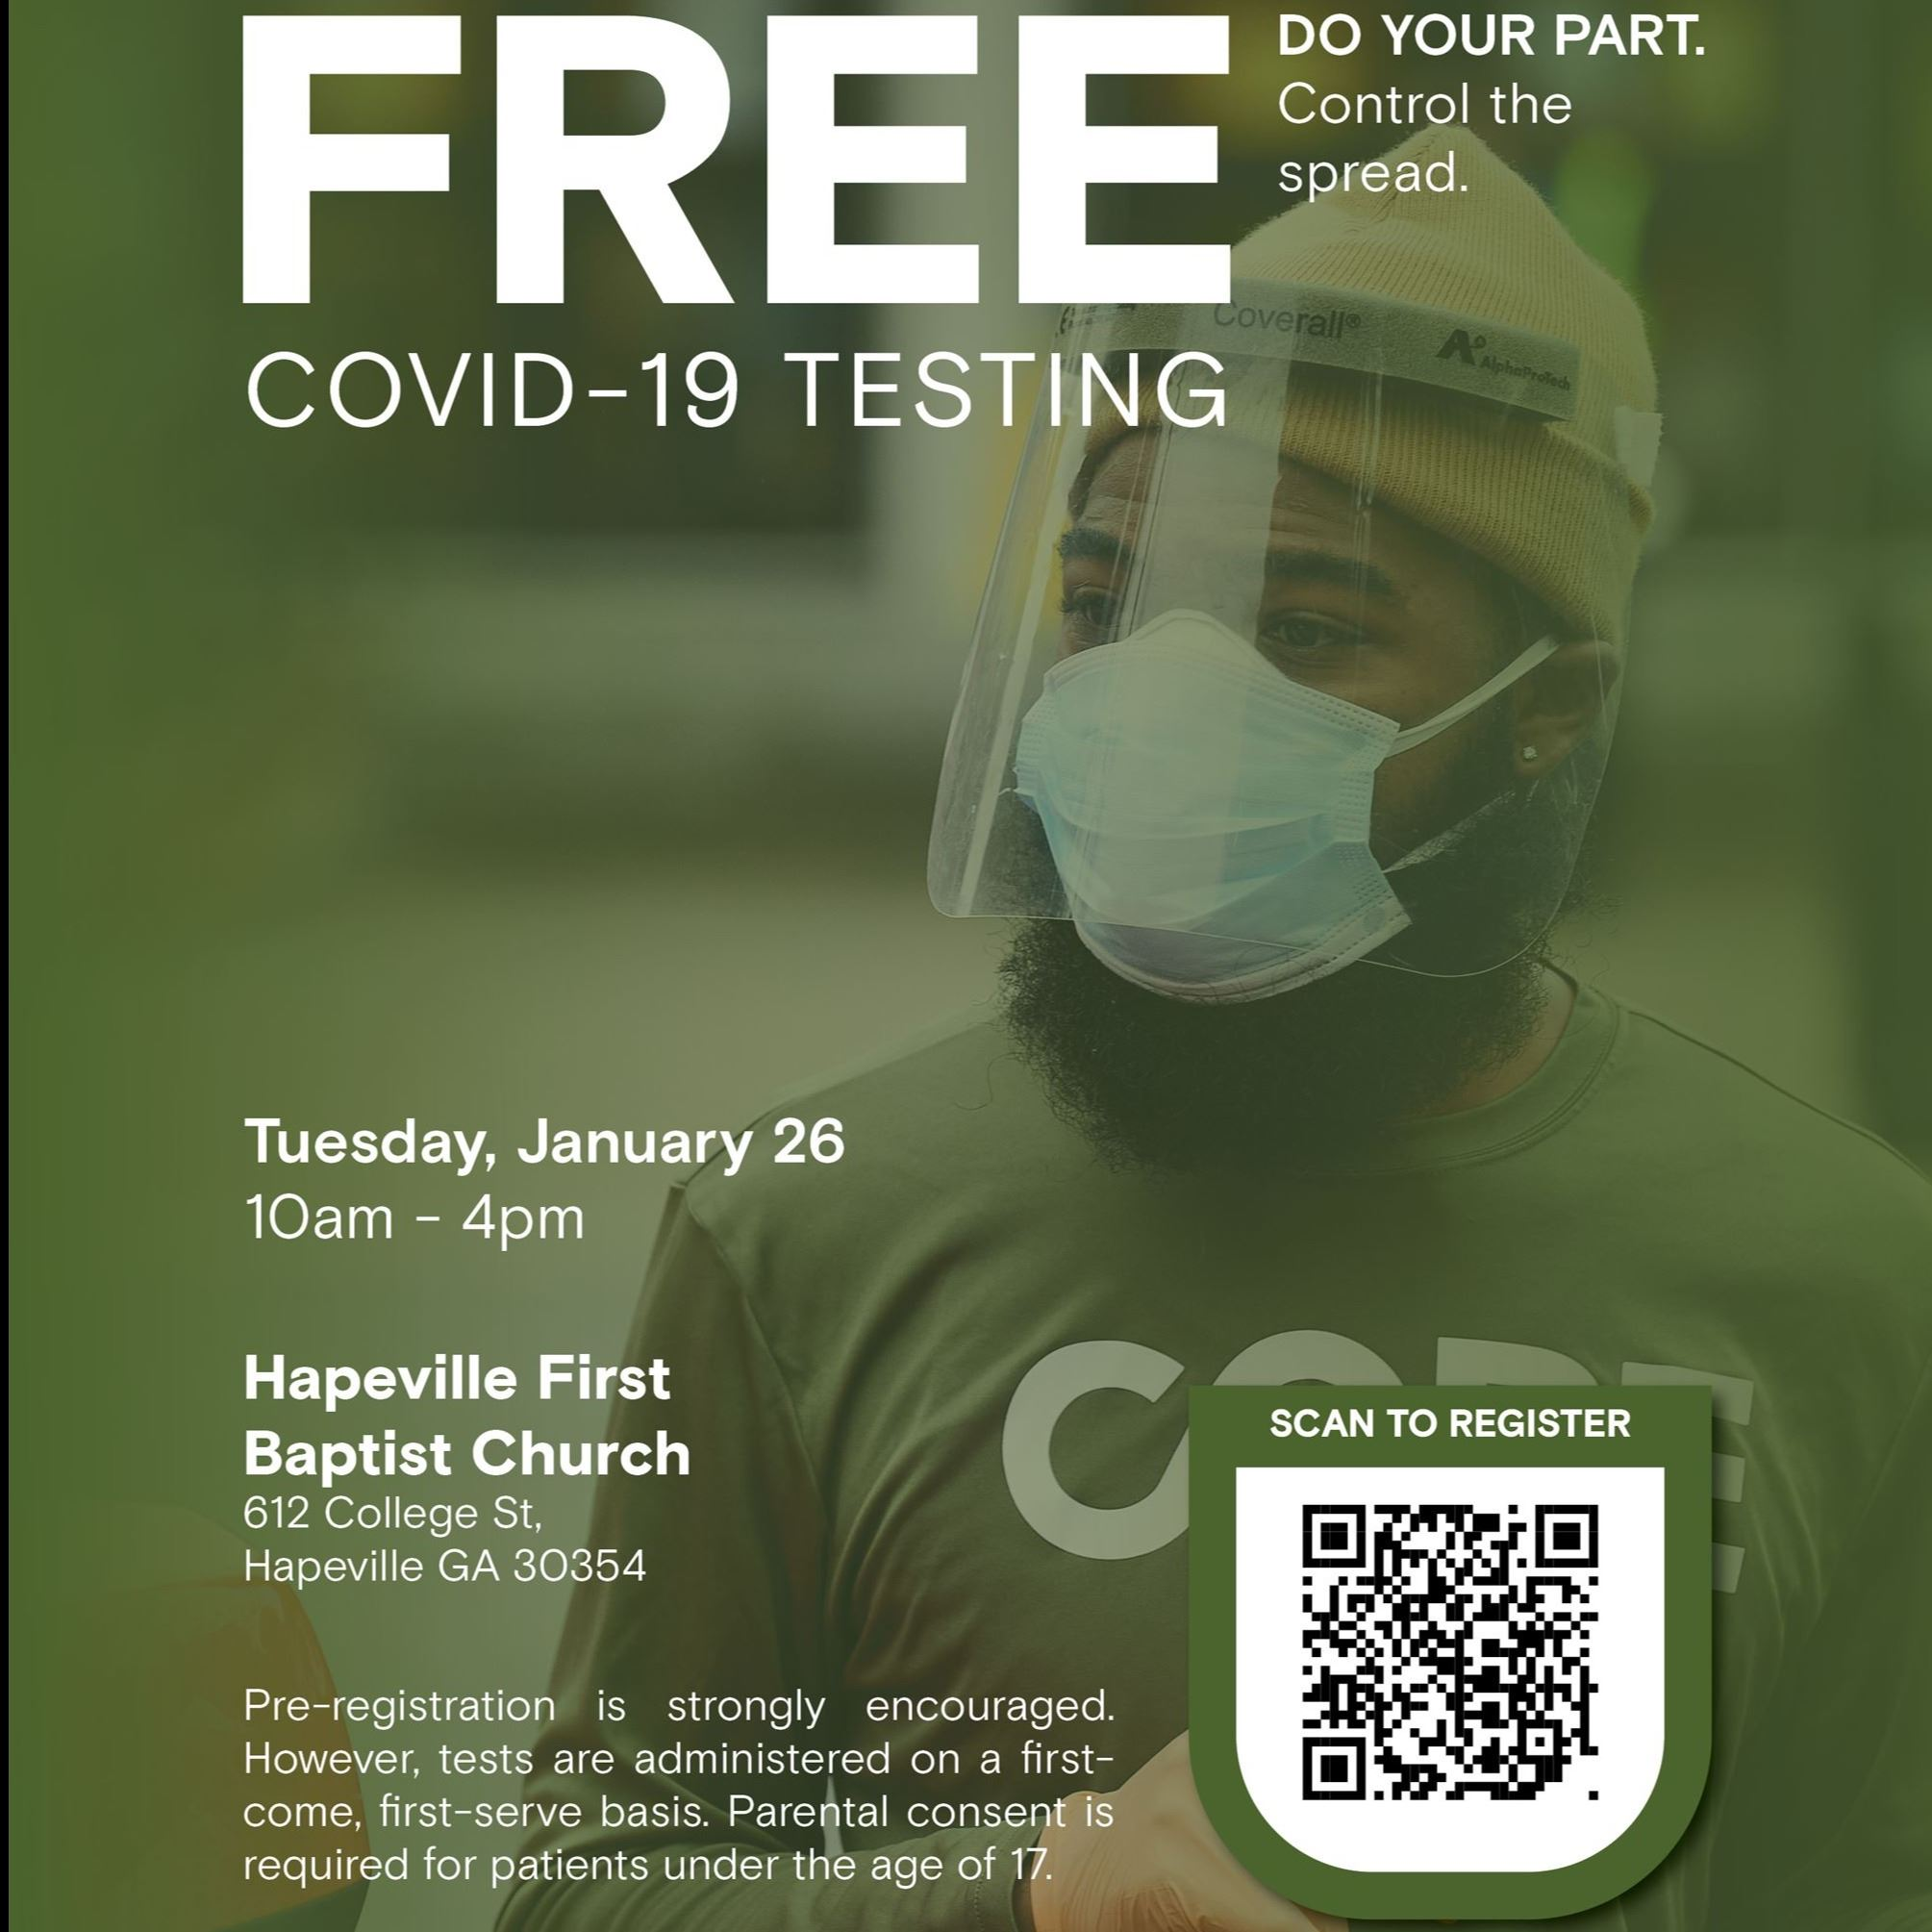 Flyer advertising FREE COVID-testing